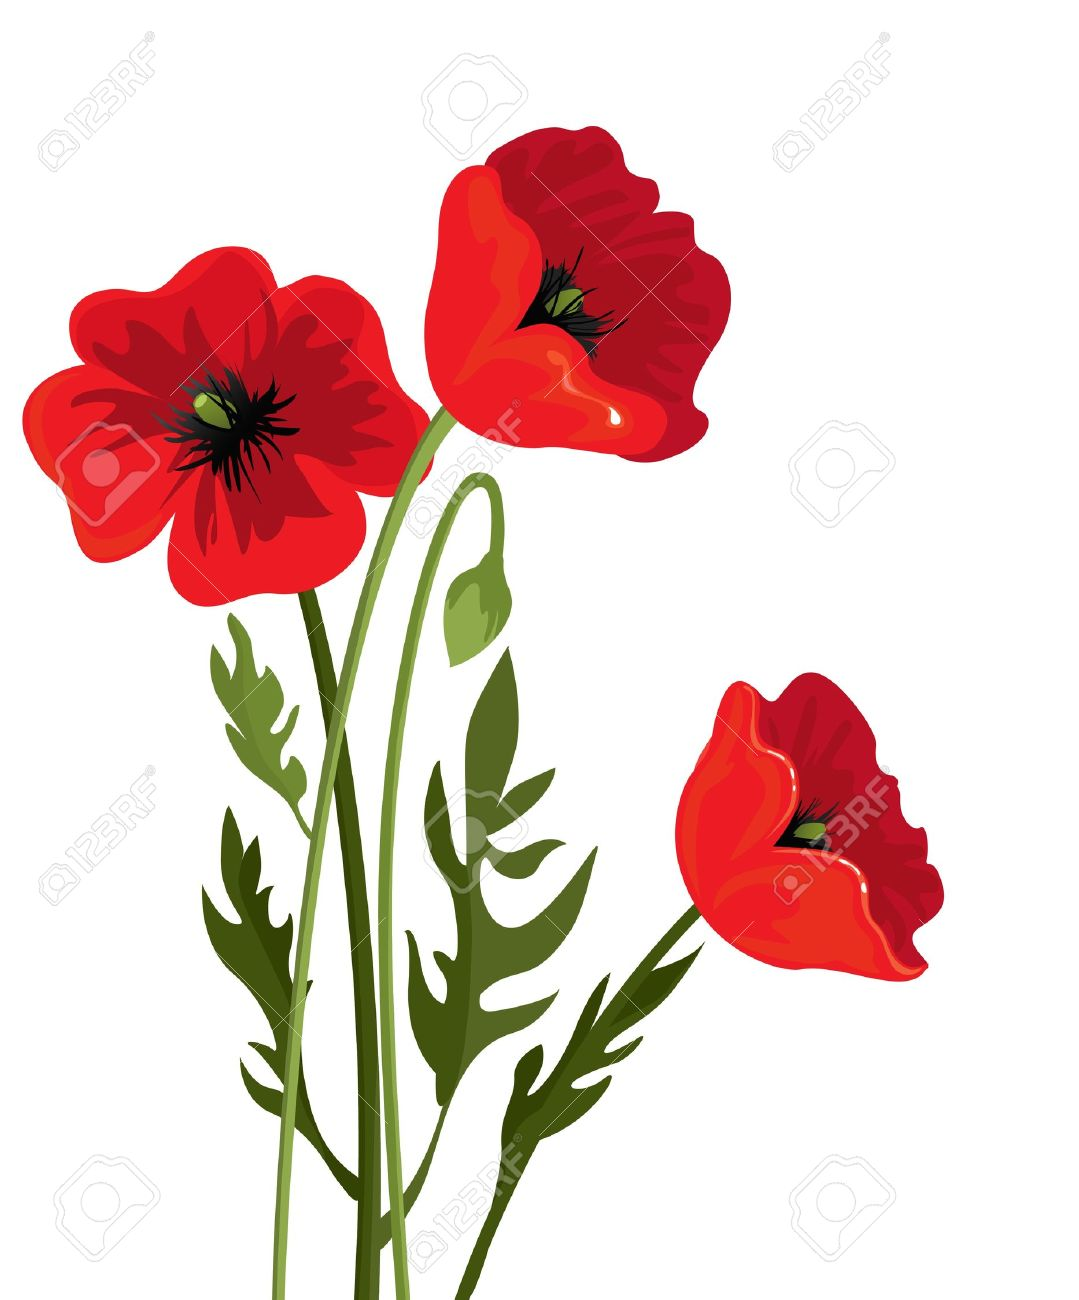 Poppy Clipart At Getdrawings Free For Personal Use Poppy